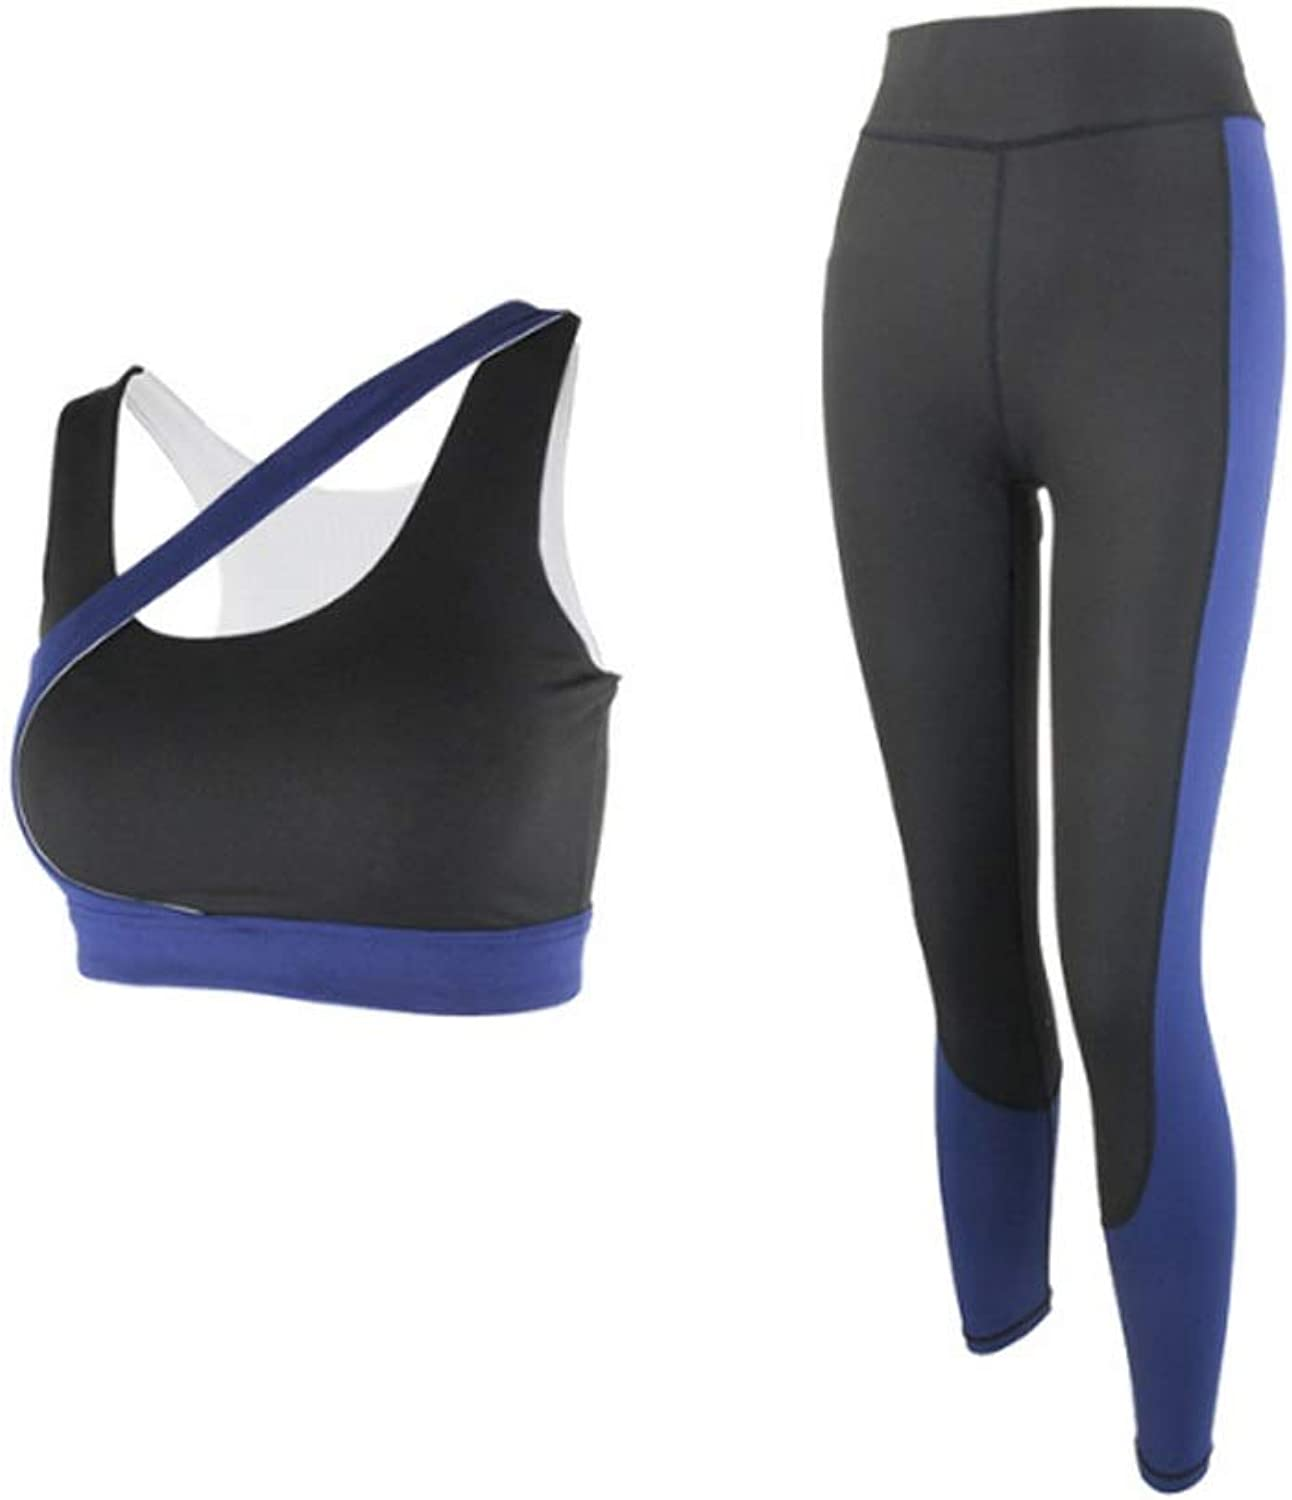 Yoga Clothing Suits Women's Fitness Clothing Sleeveless Sportswear Running Fitness Clothes Elasticity Sportswear